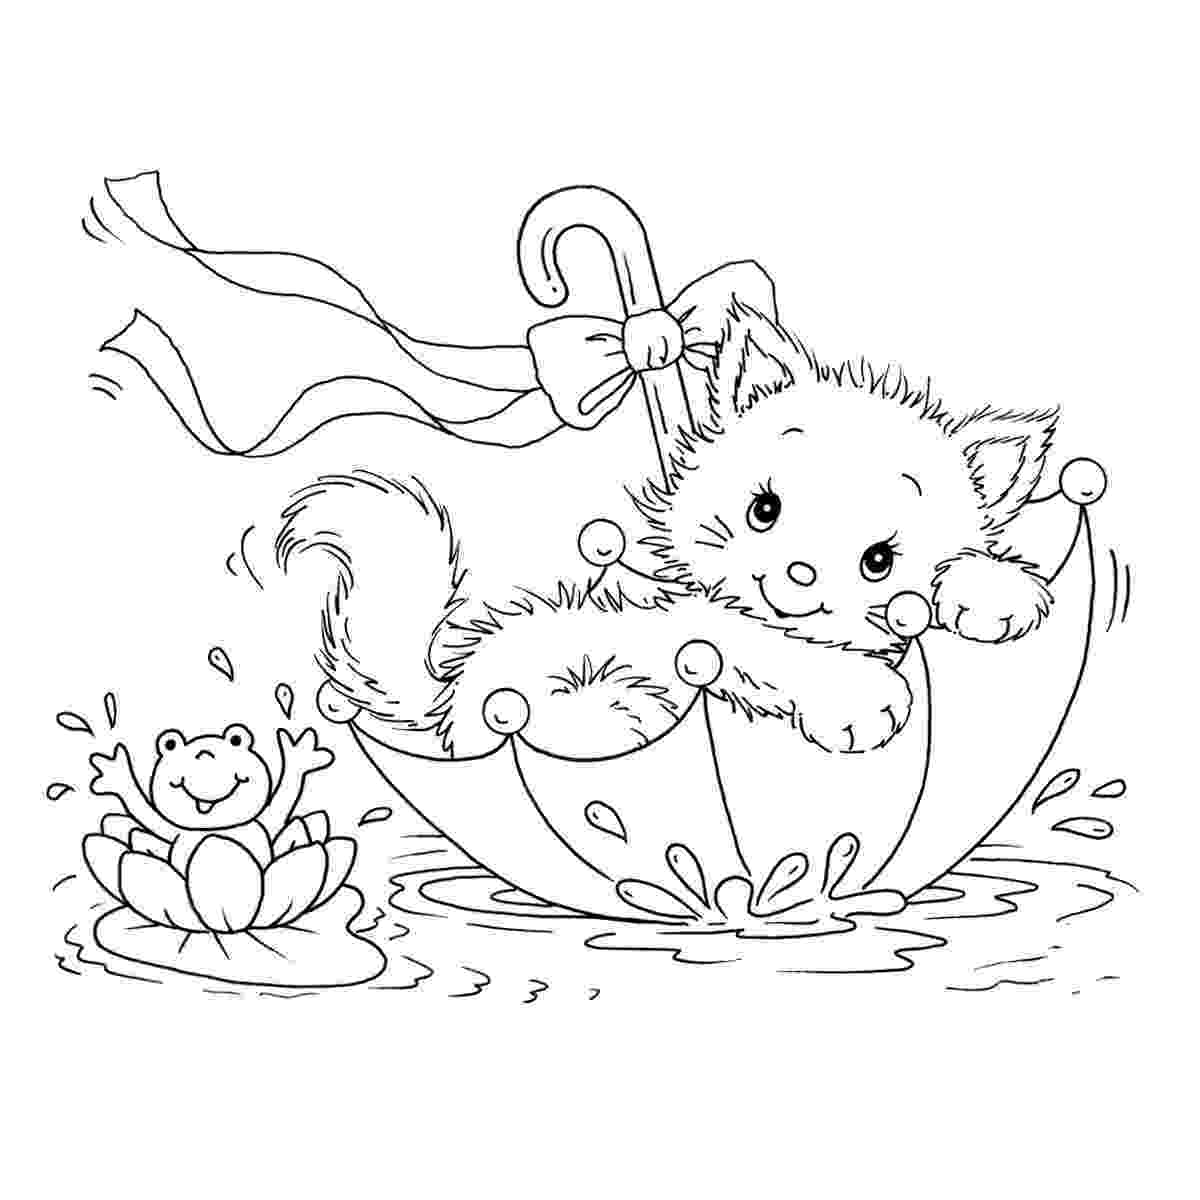 coloring pages of cats free printable kitten coloring pages for kids best pages of coloring cats